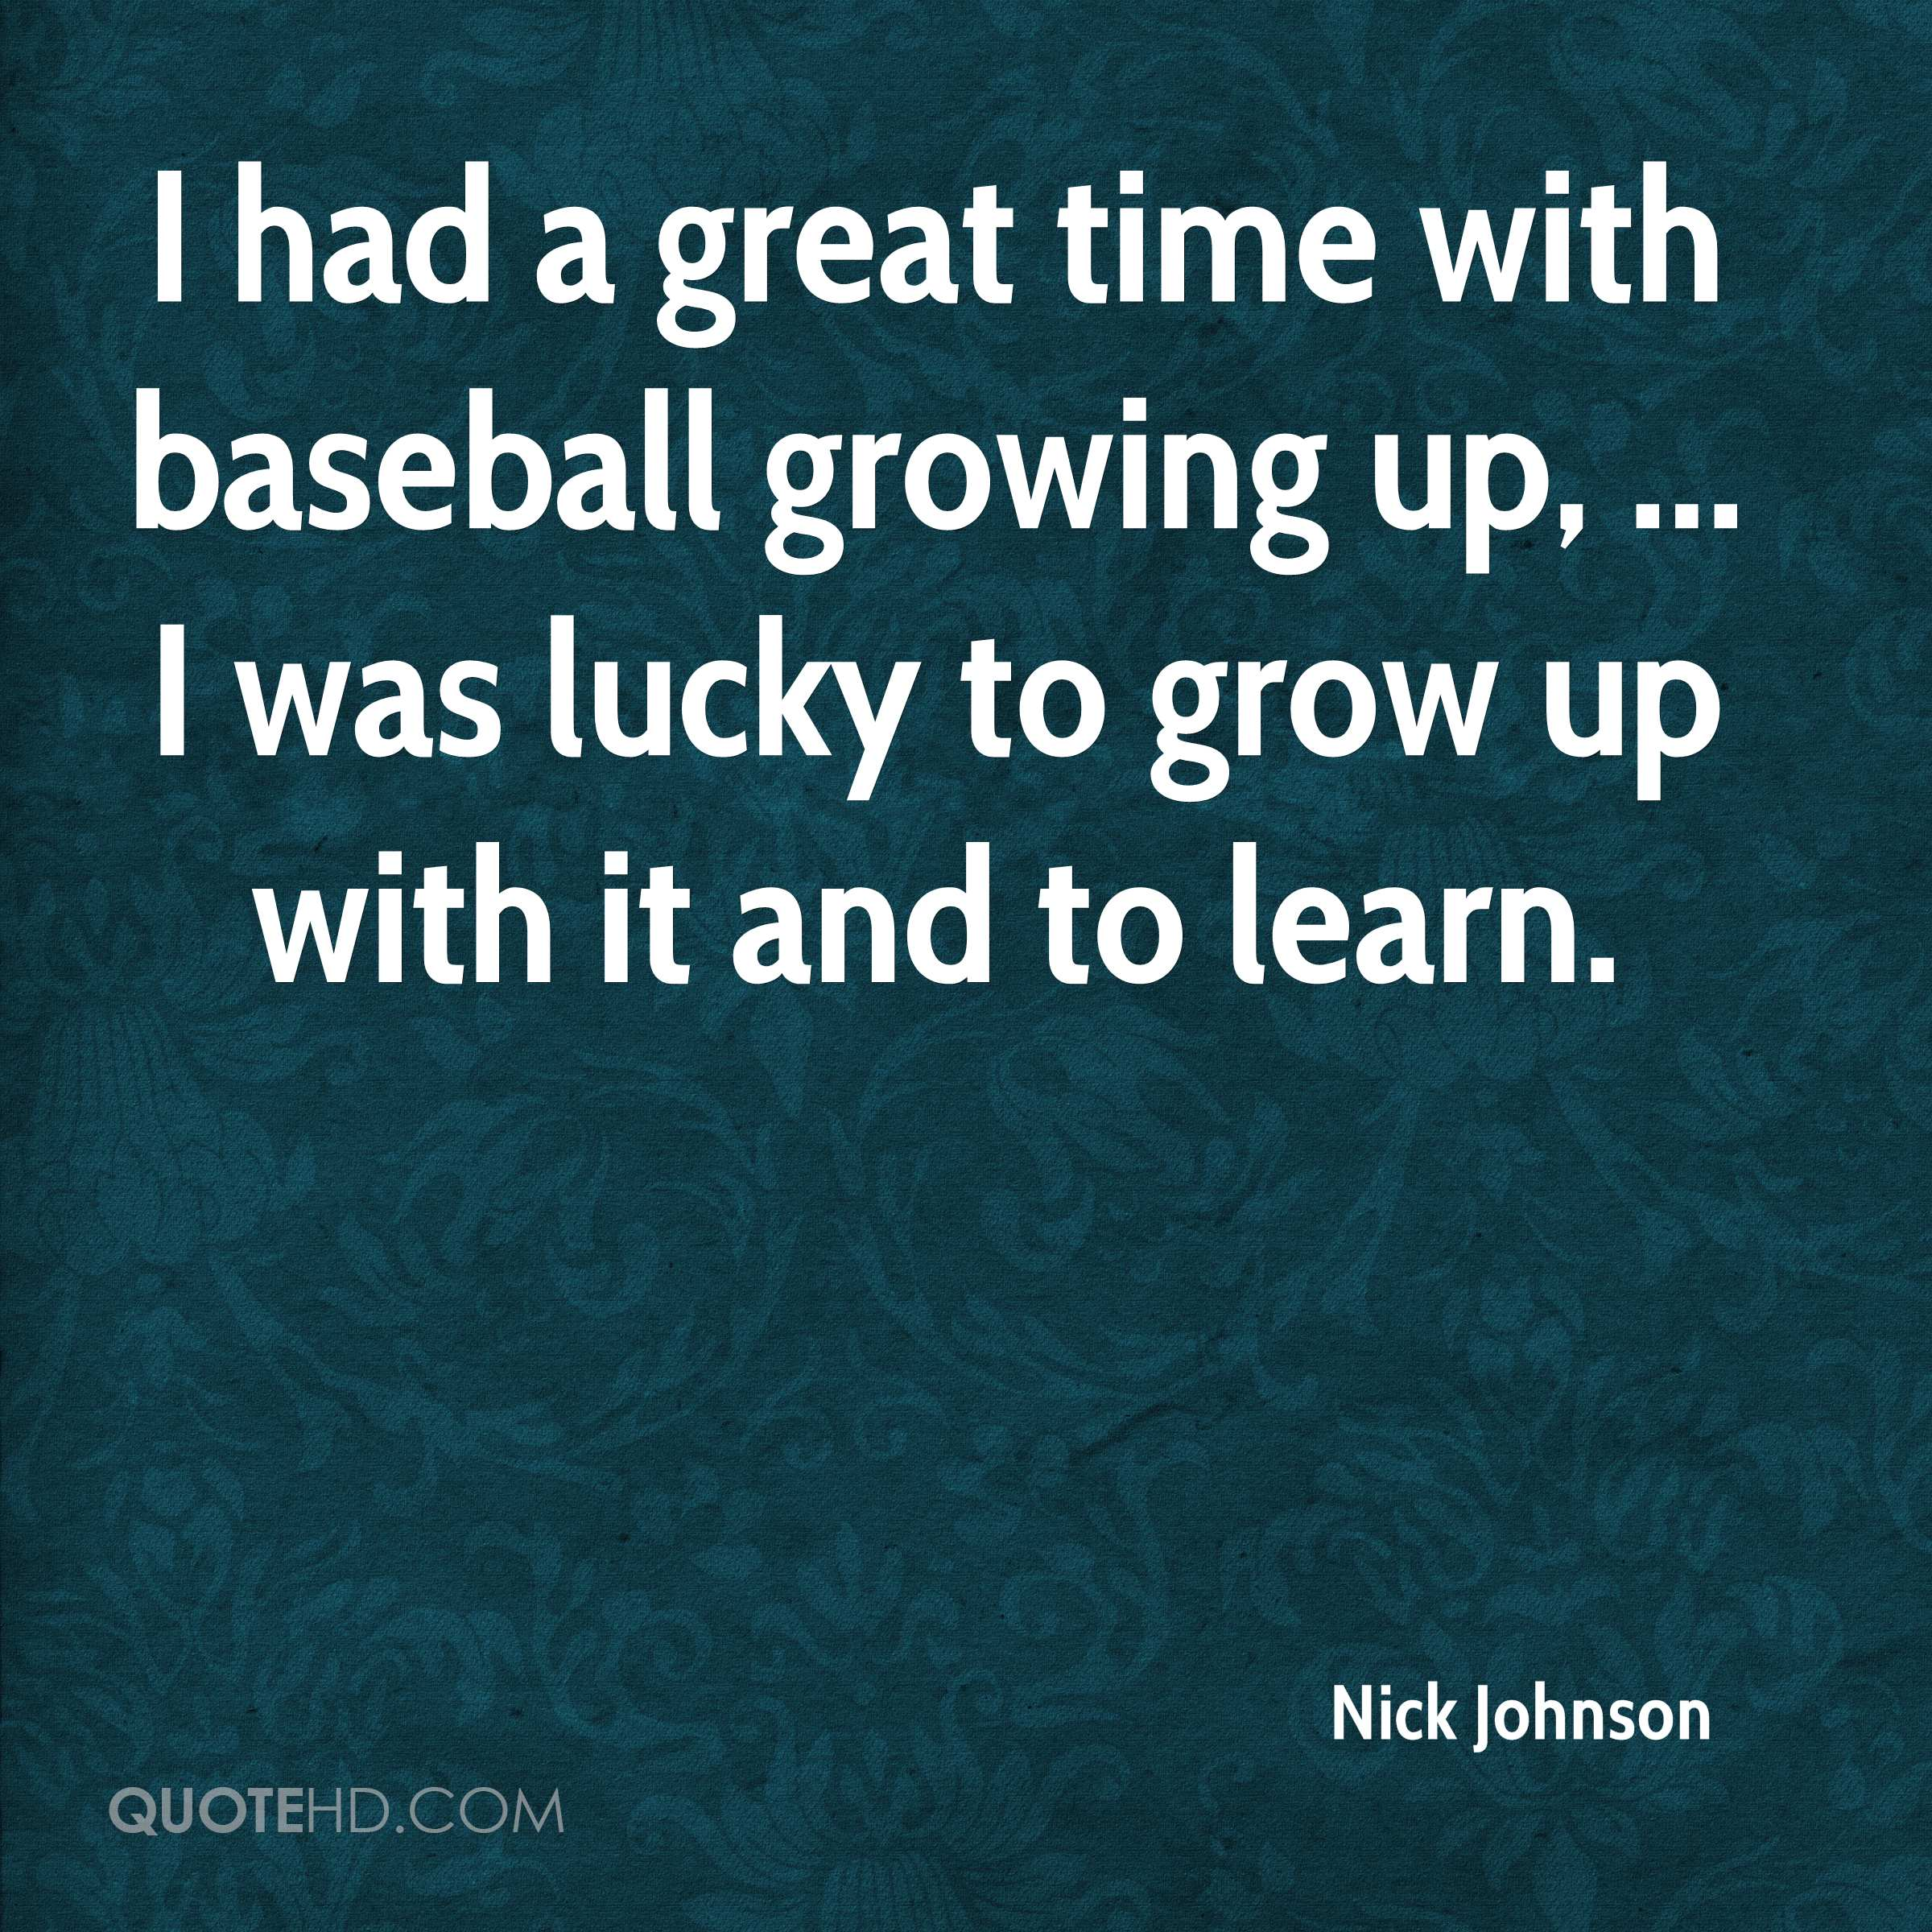 I had a great time with baseball growing up, ... I was lucky to grow up with it and to learn.